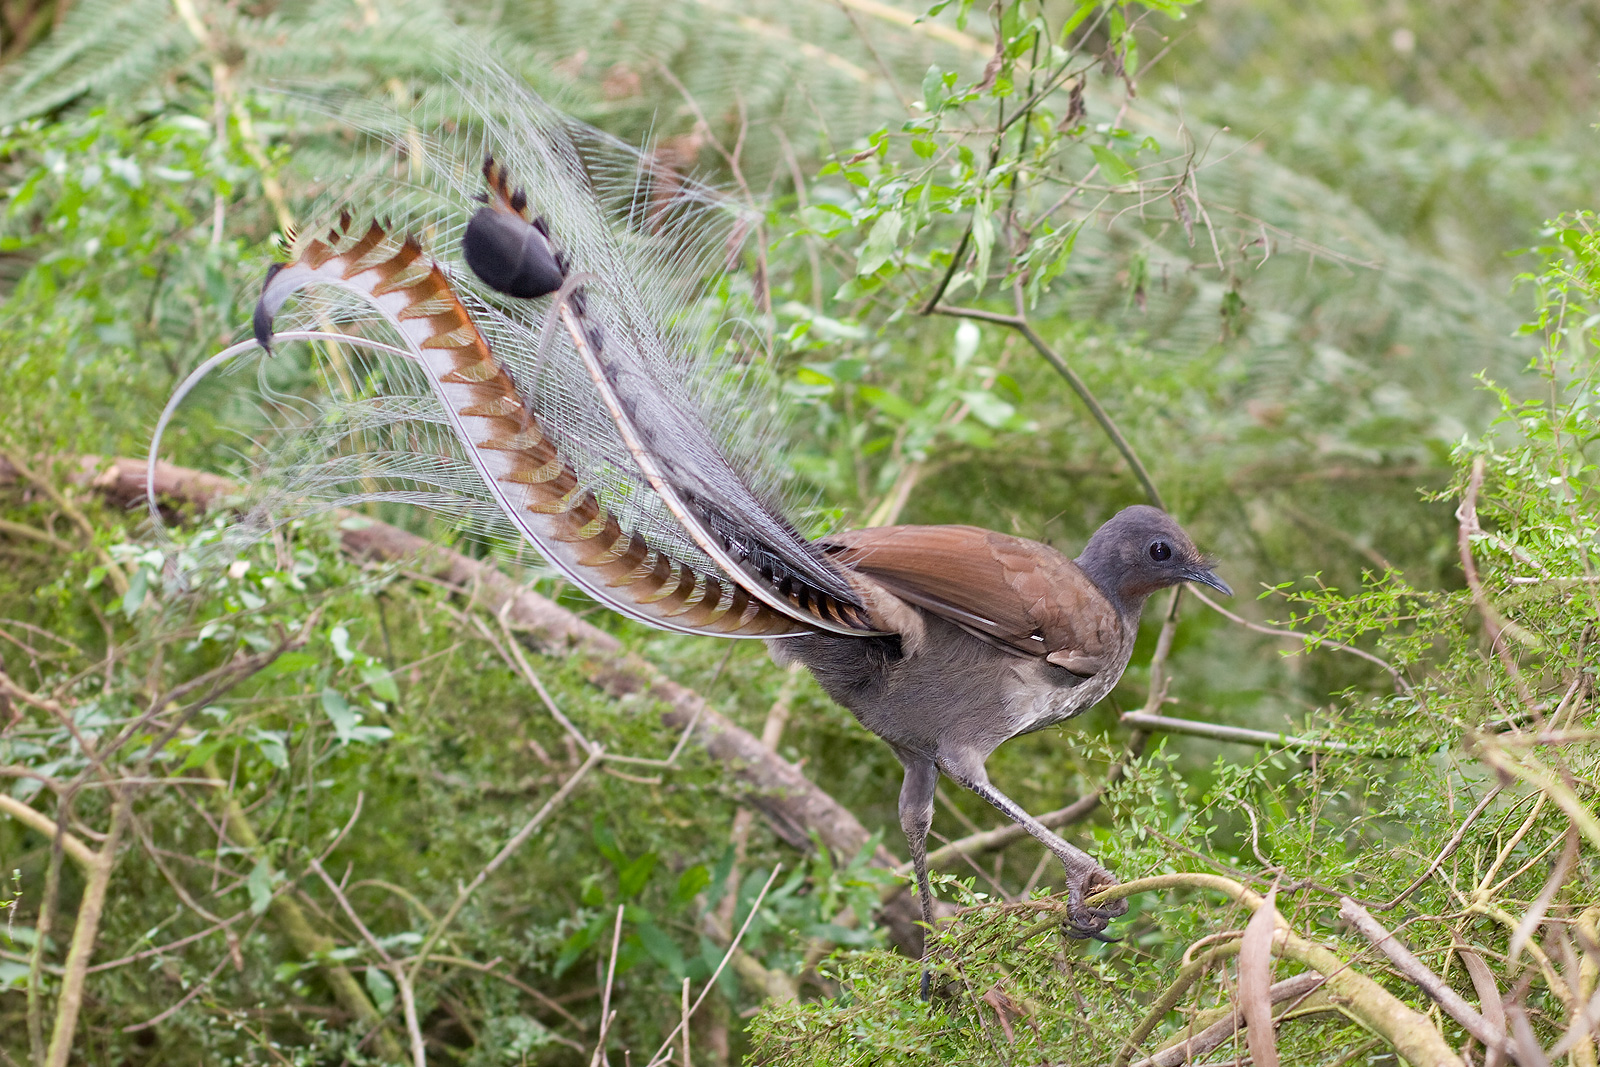 Superb lyrebird in scrub. Photo taken in Victoria, Australia, June 2008.